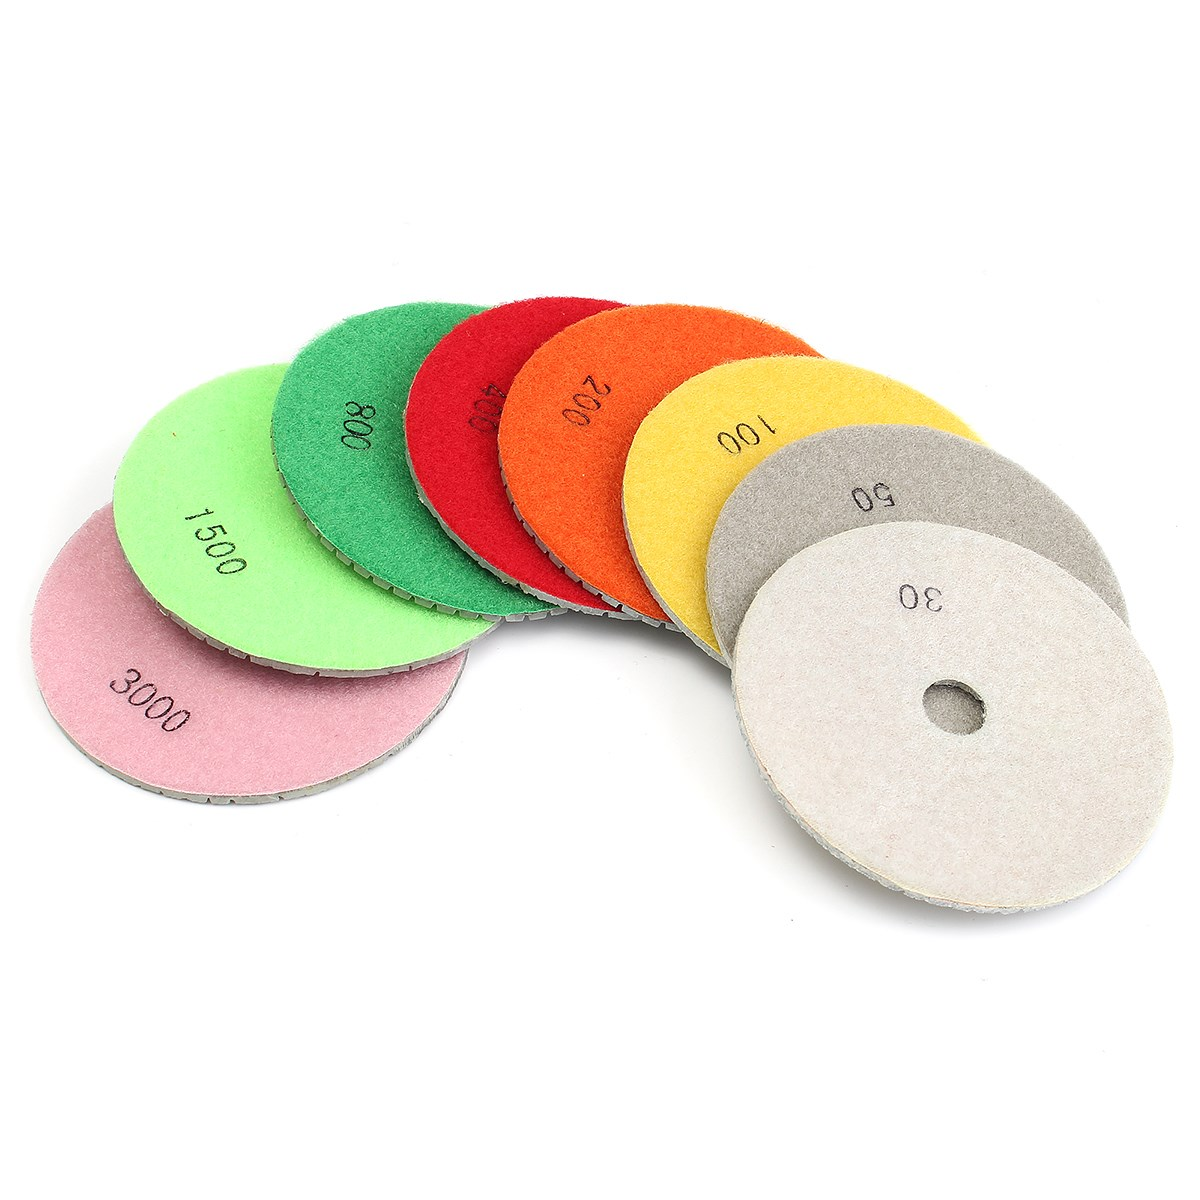 High quality diamond polishing tool granite marble concrete stone tile tiles multi - purpose polishing pad 9PCS<br>